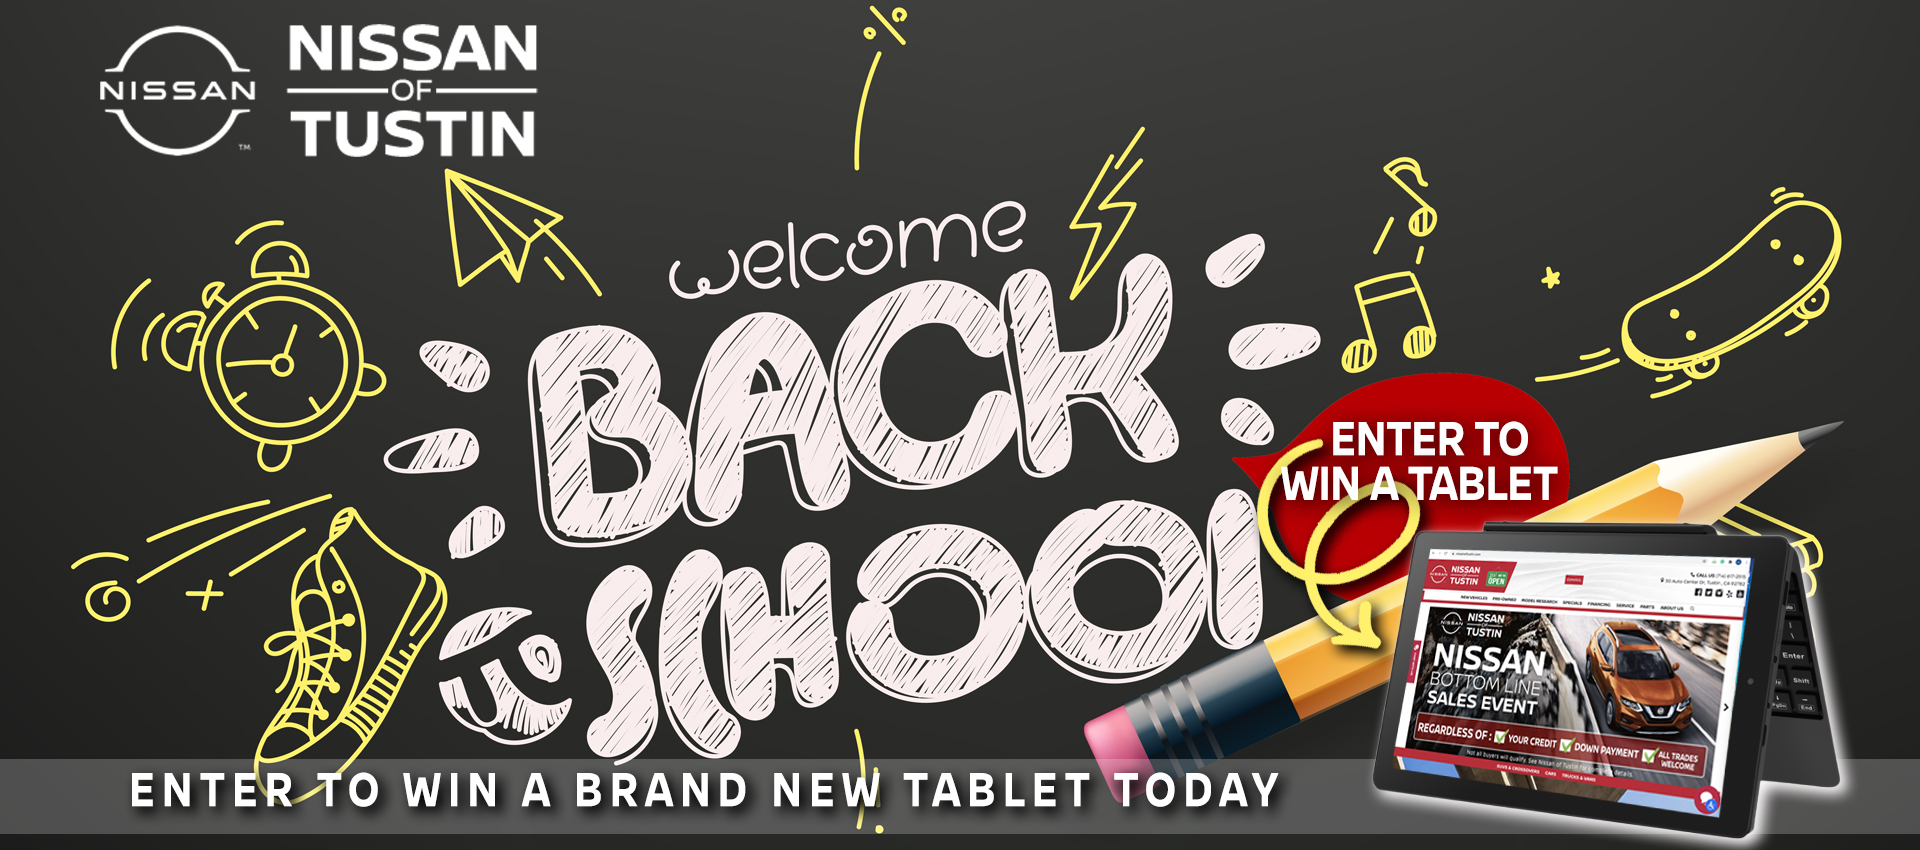 Welcome back to School - Enter to Win a Brand New Tablet Today